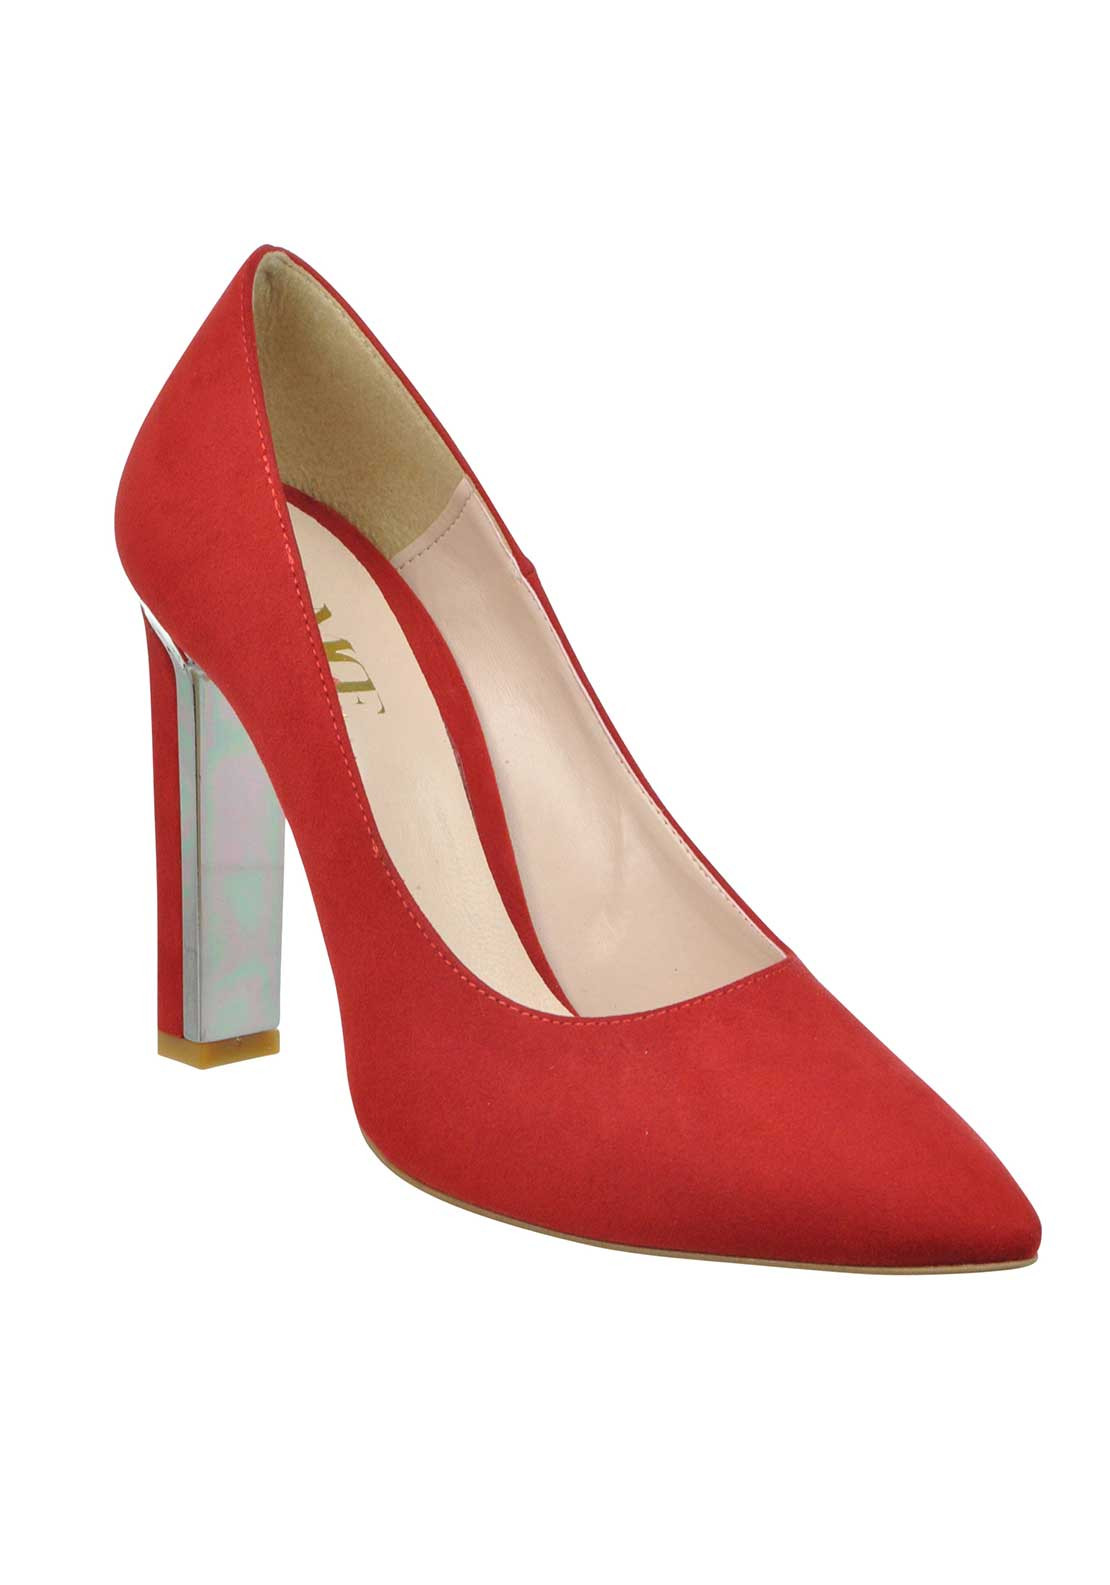 McElhinney's Faux Suede pointed Toe Chunky Heeled Shoes, Red